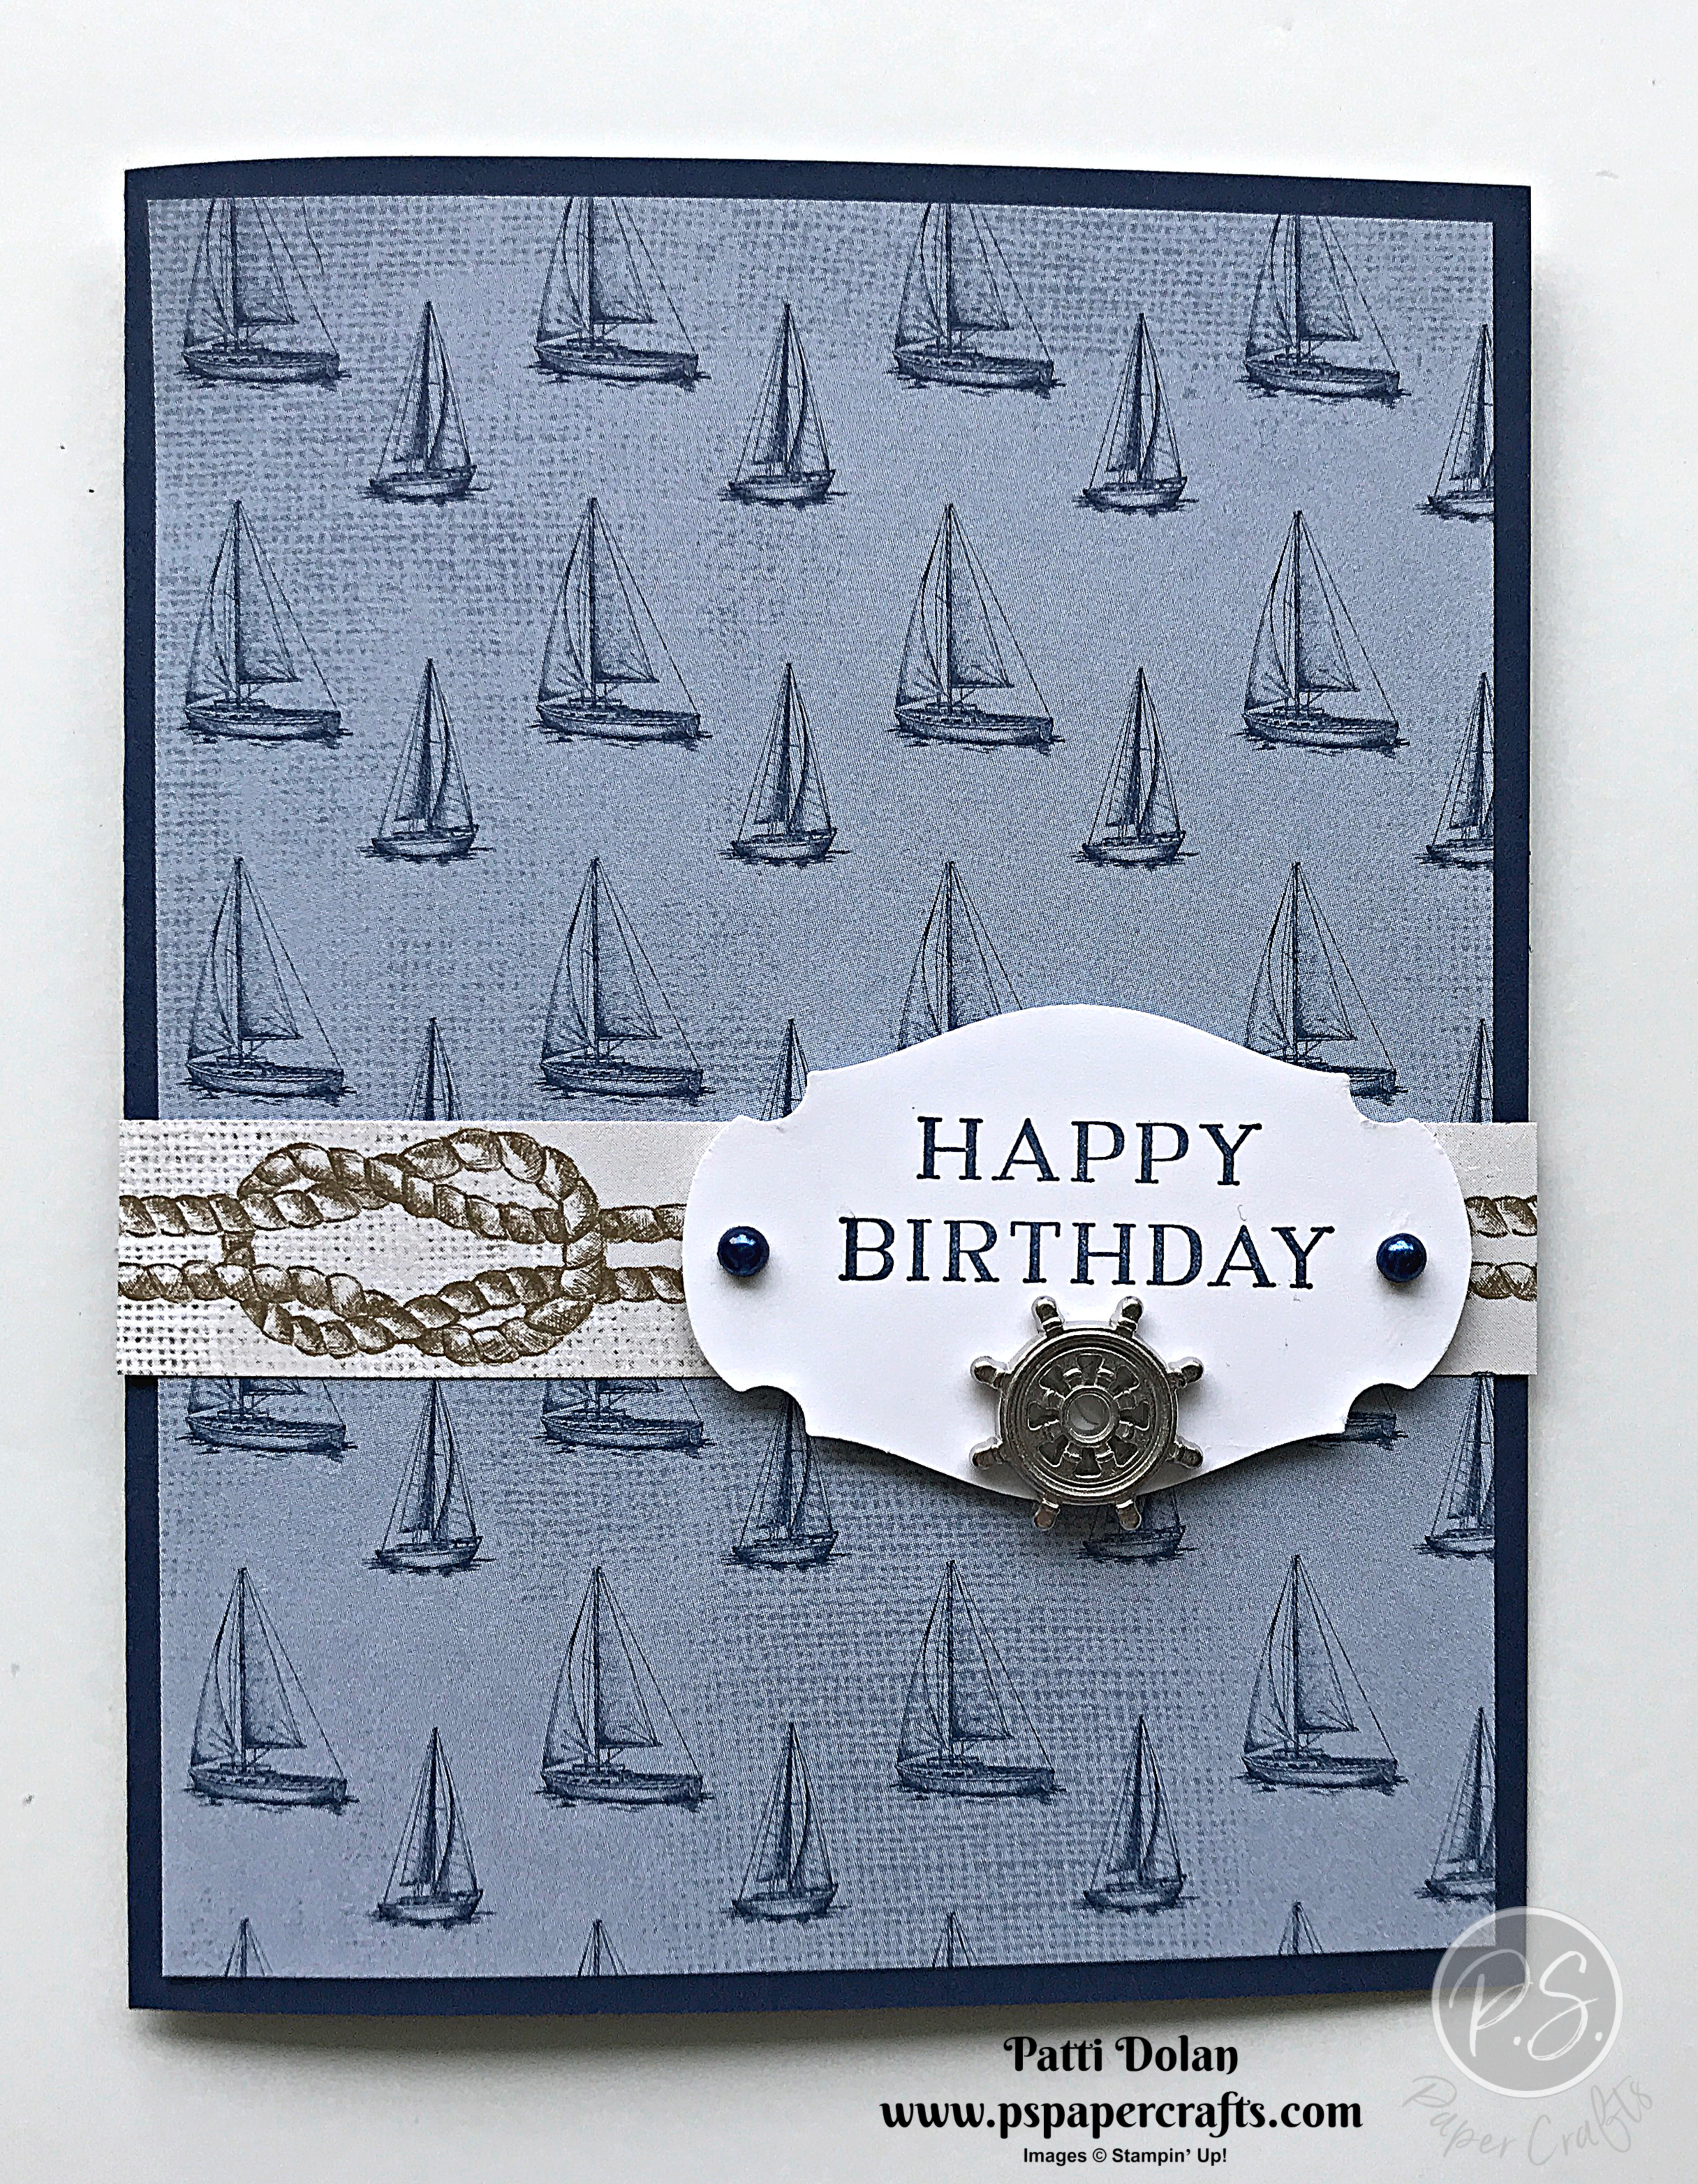 Come Sail Away Birthday.jpg